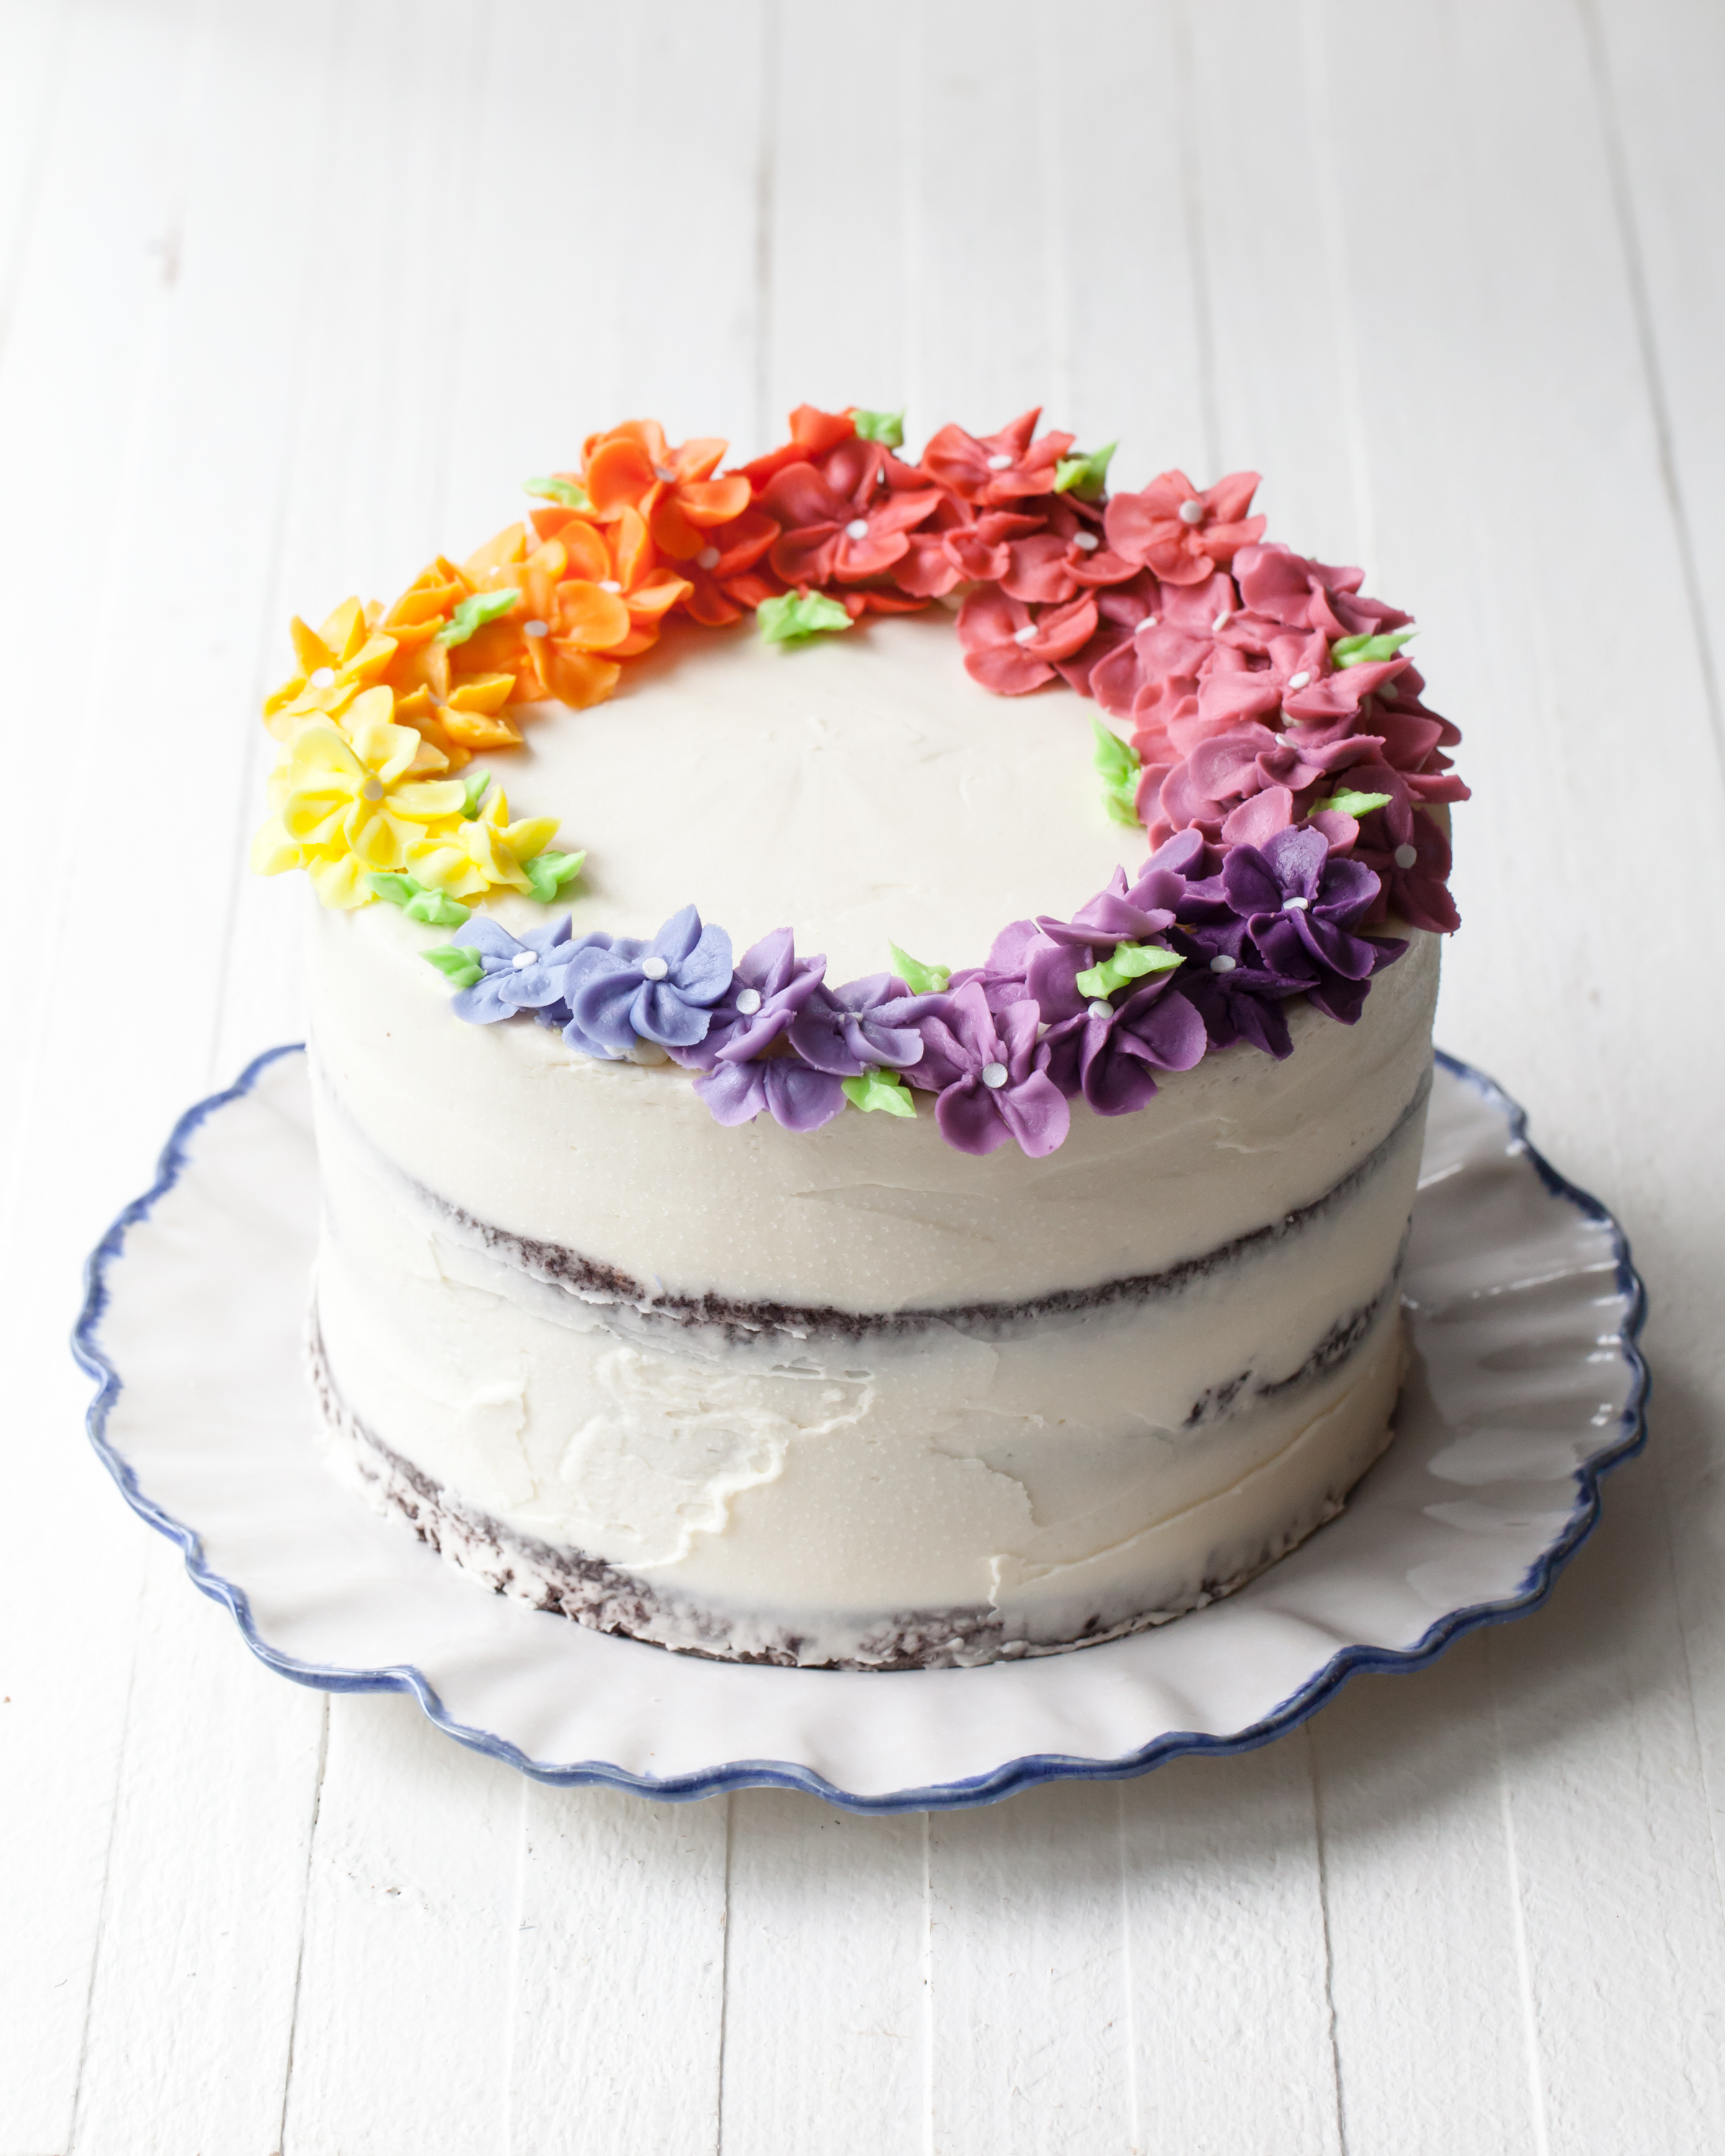 How to make a rainbow cake with layers of eggless chocolate cake and peanut butter filling